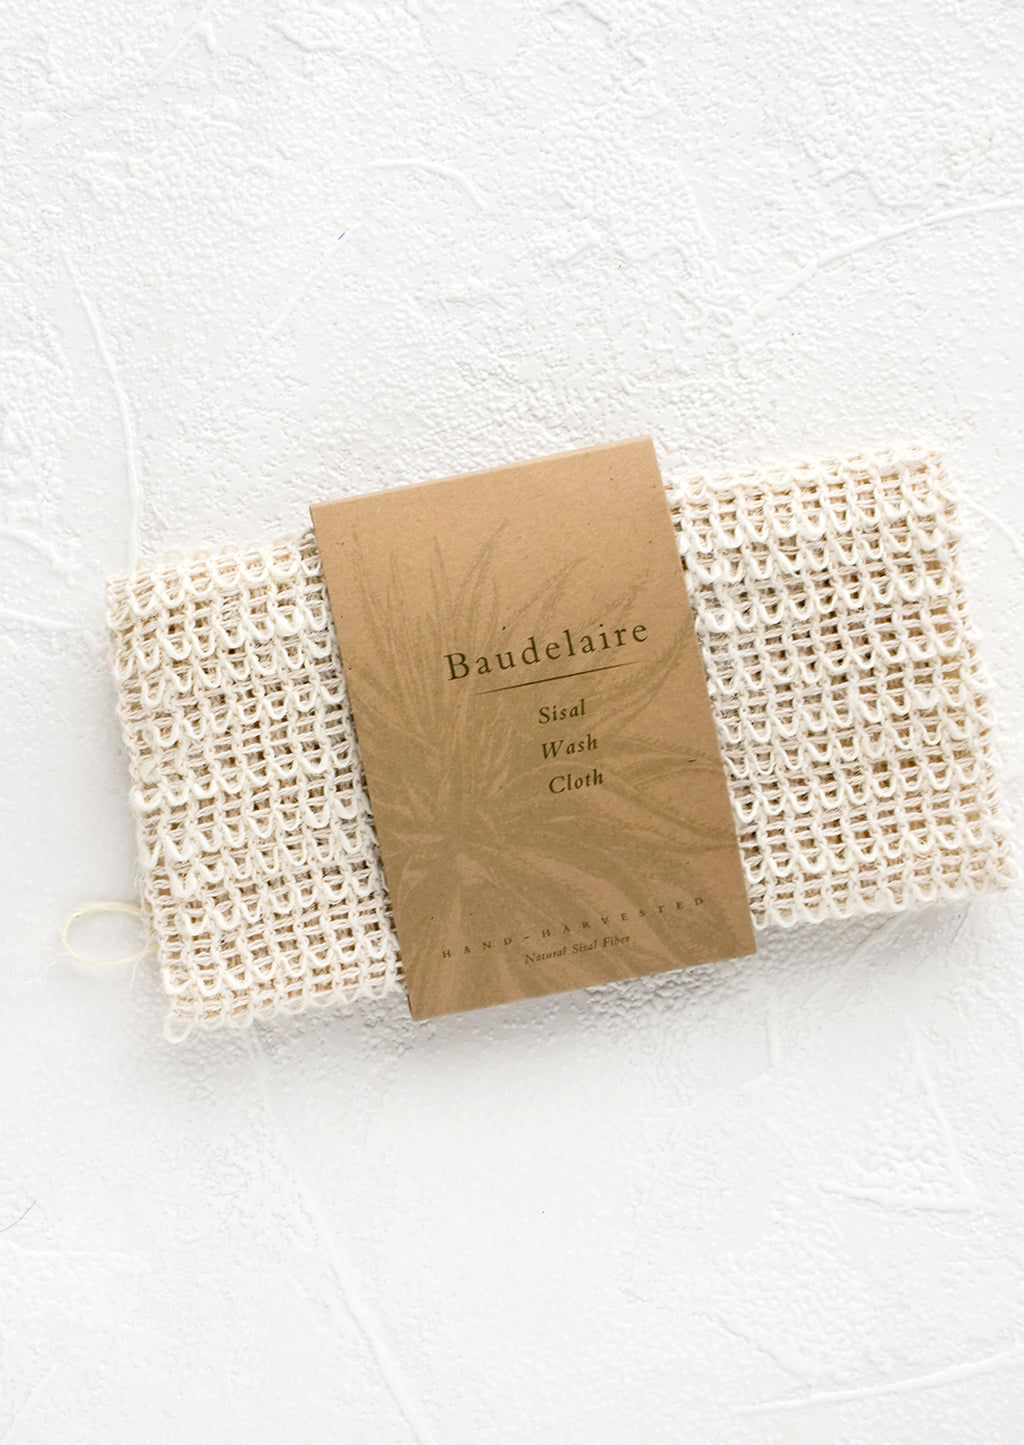 1: Natural sisal washcloth folded in its packaging